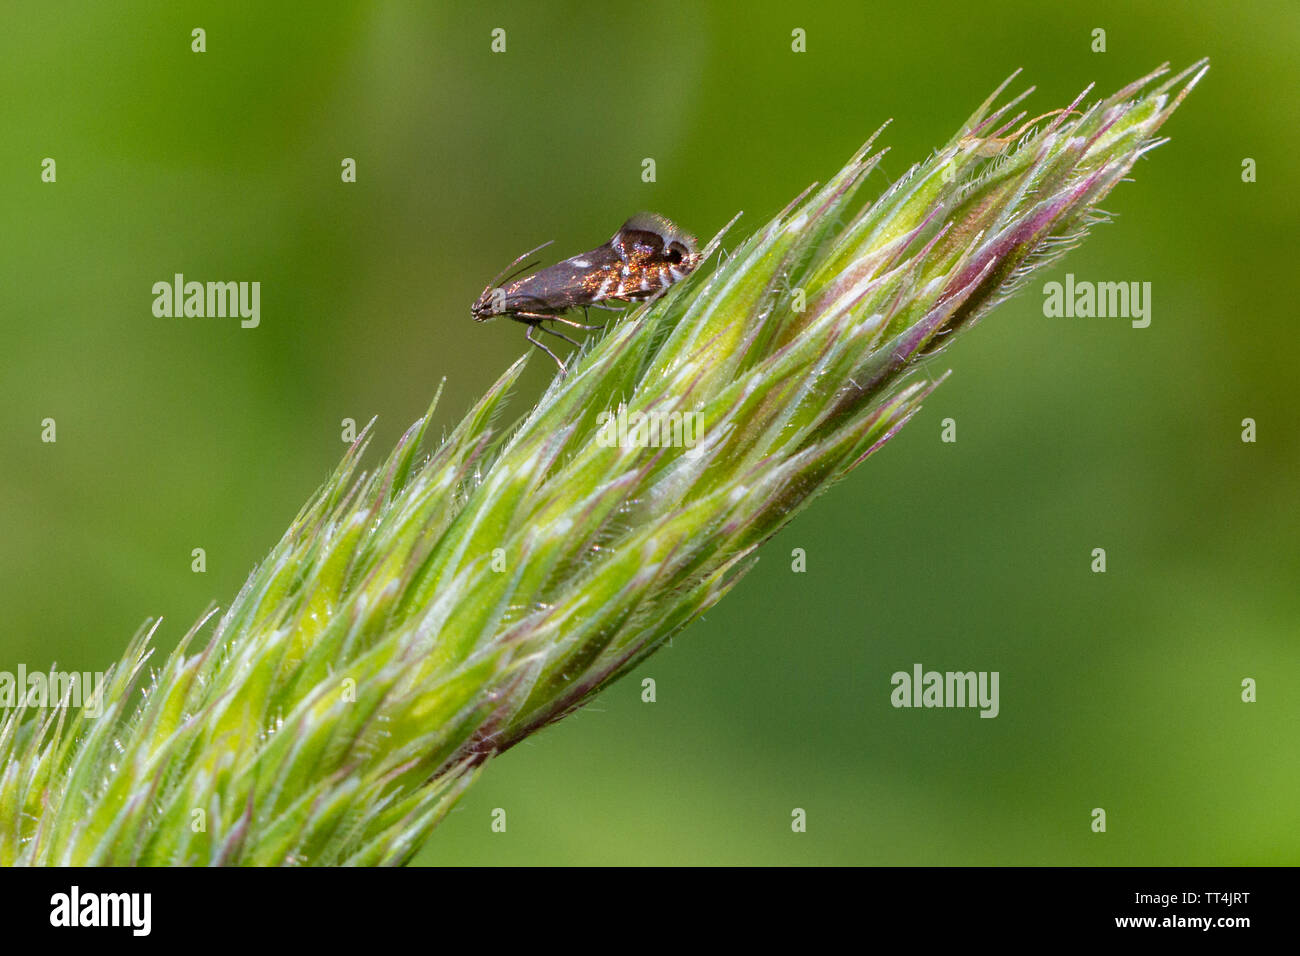 Cocksfoot moth (Glyphipterix simpliciella) - micro moth with metallic wings perched on a grass seed head, UK - Stock Image